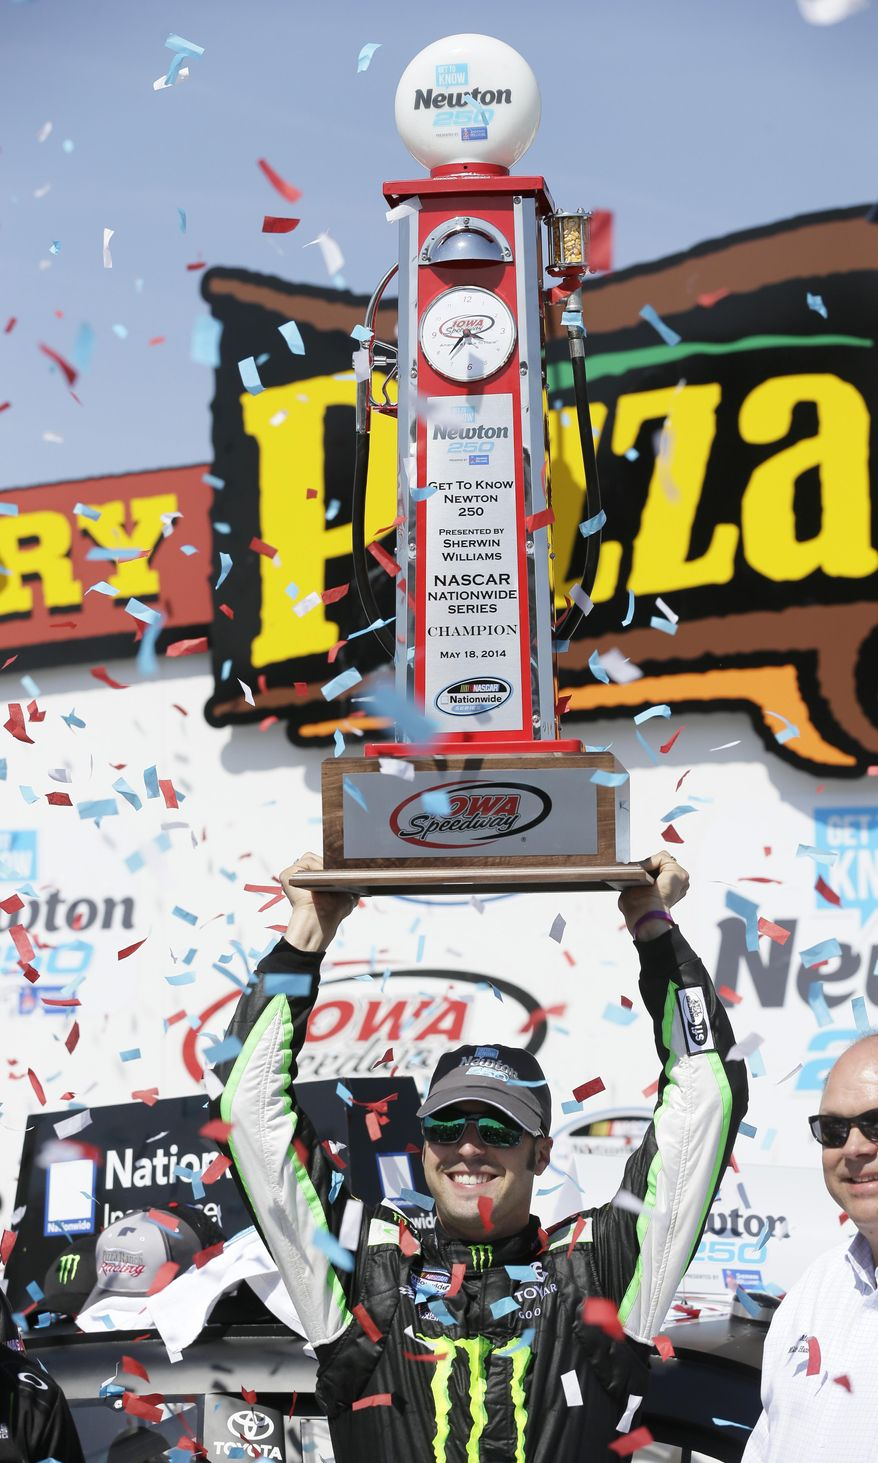 Sam Hornish Jr. holds the trophy after winning the NASCAR Nationwide auto race, Sunday, May 18, 2014, at Iowa Speedway in Newton, Iowa. (AP Photo/Charlie Neibergall)